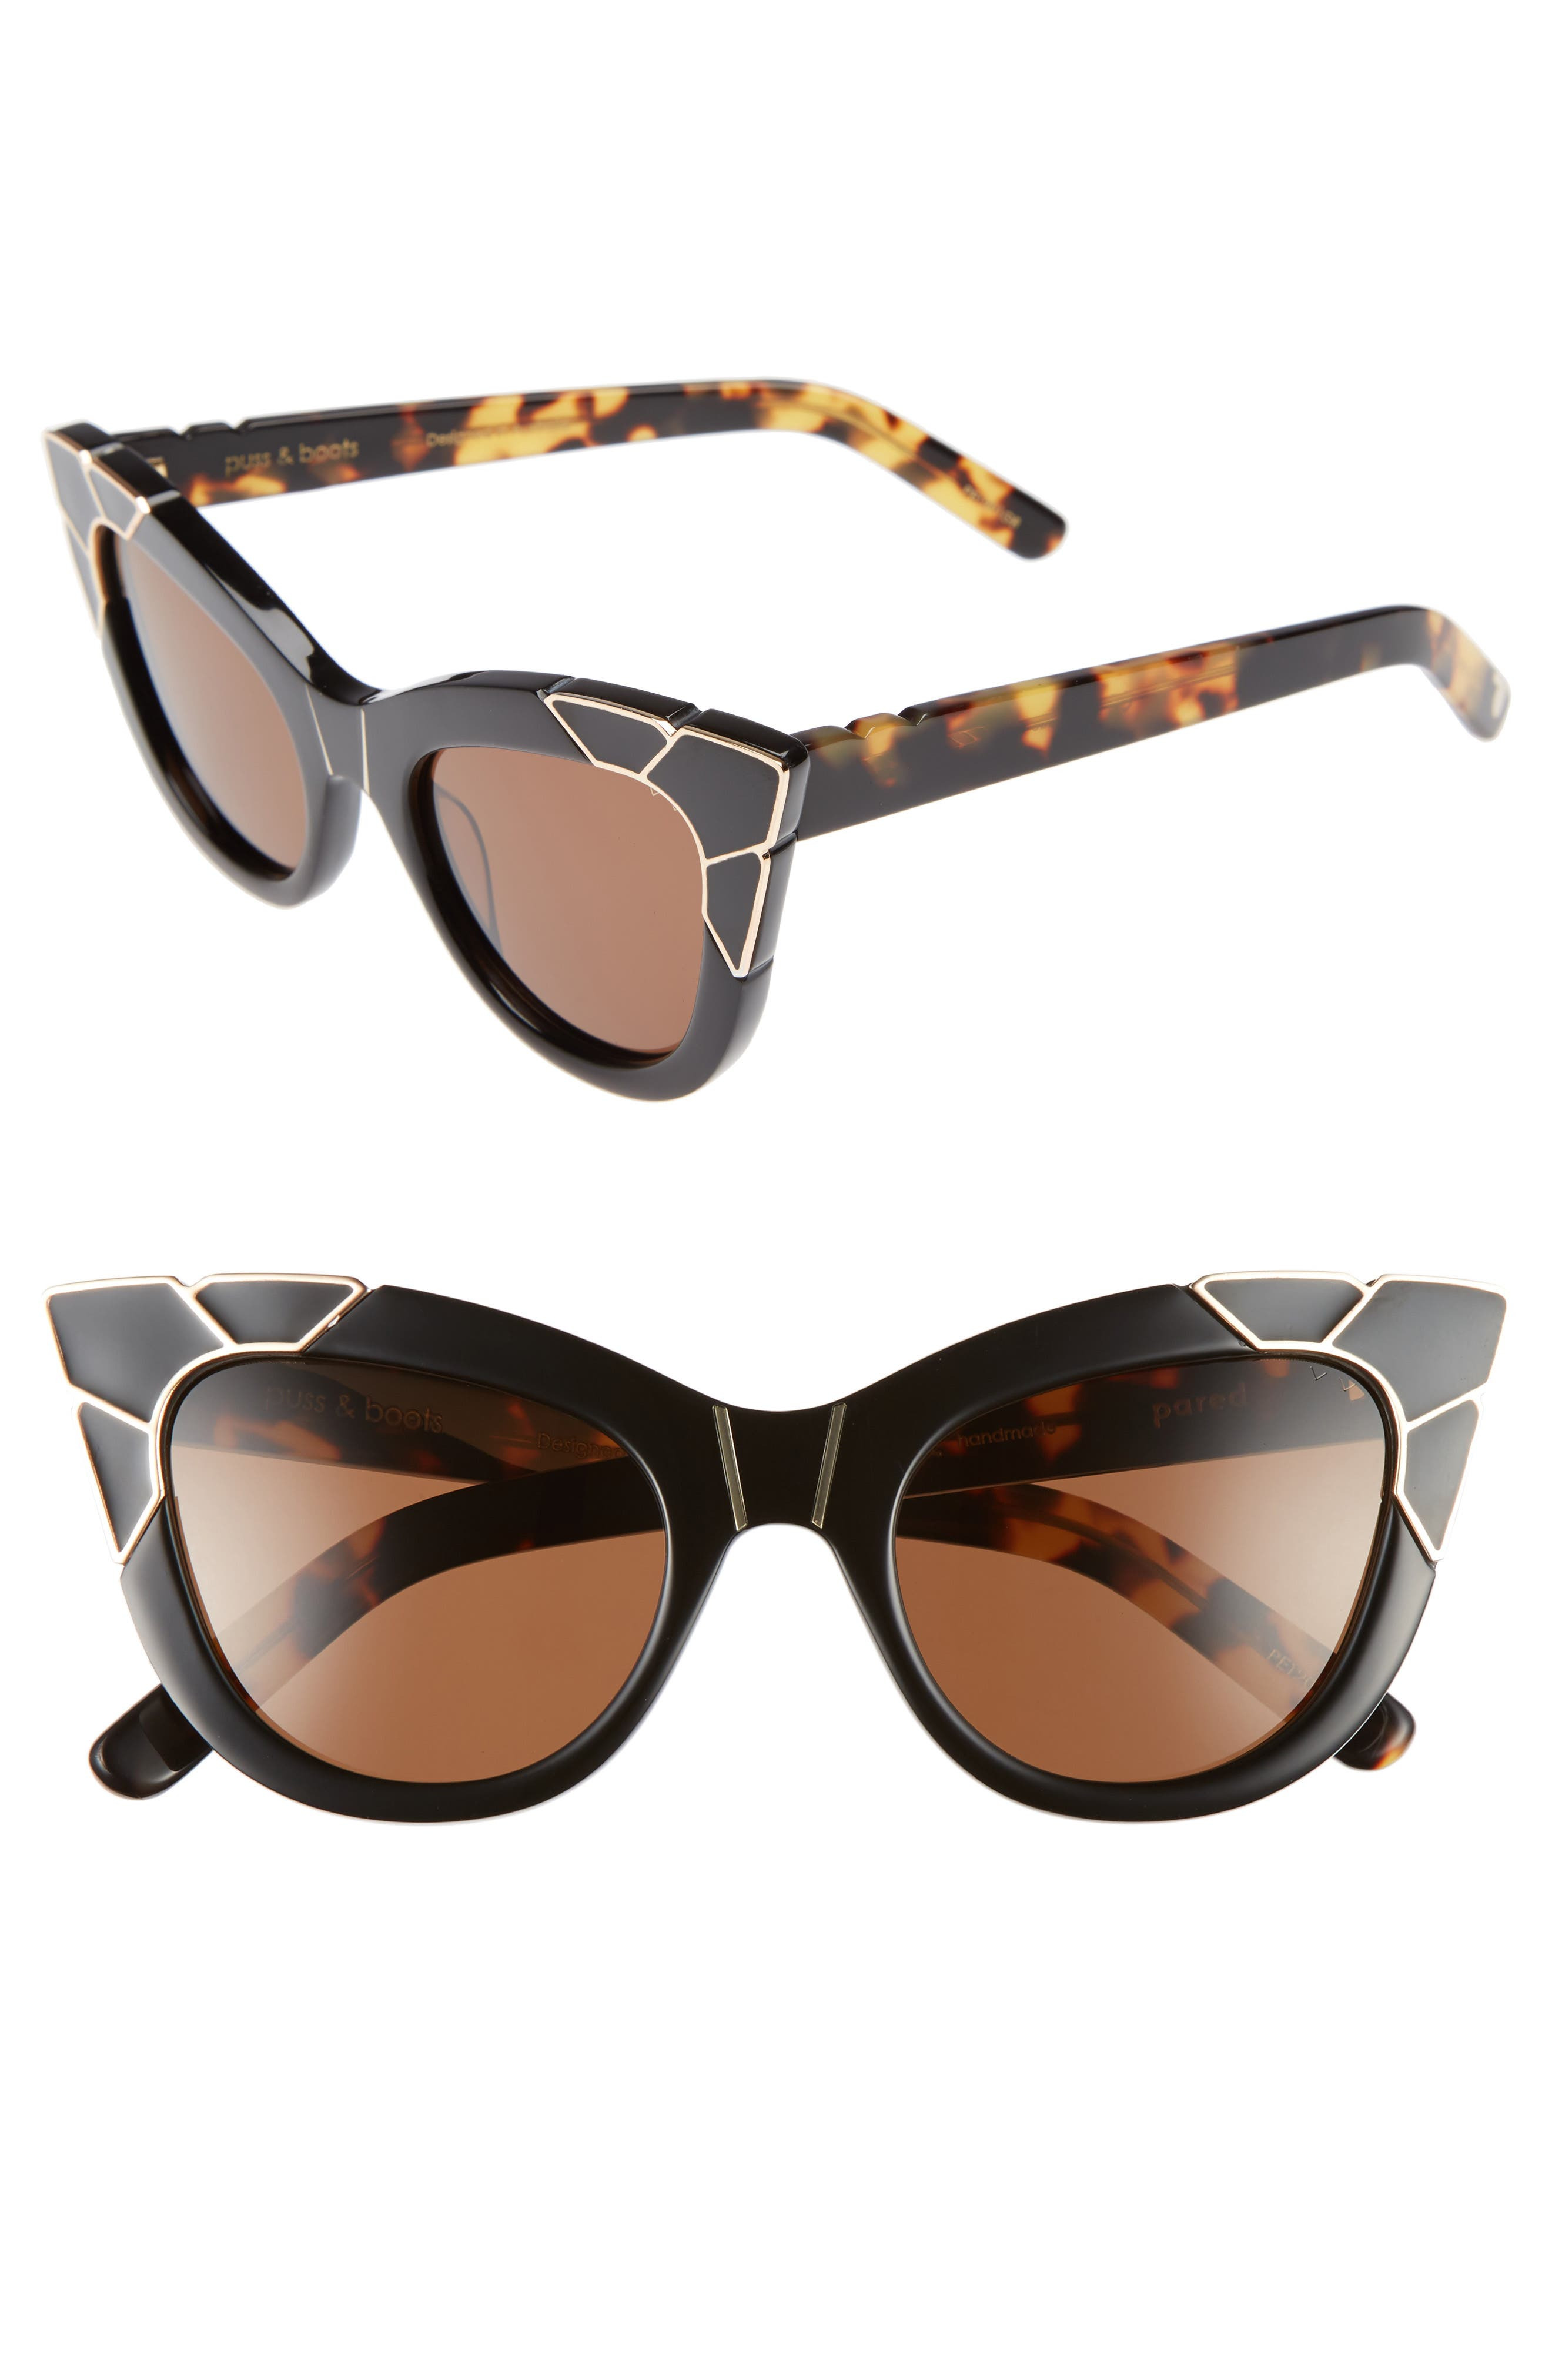 Puss & Boots 49mm Cat Eye Sunglasses,                         Main,                         color, BLACK/ GOLD/ BLACK BROWN